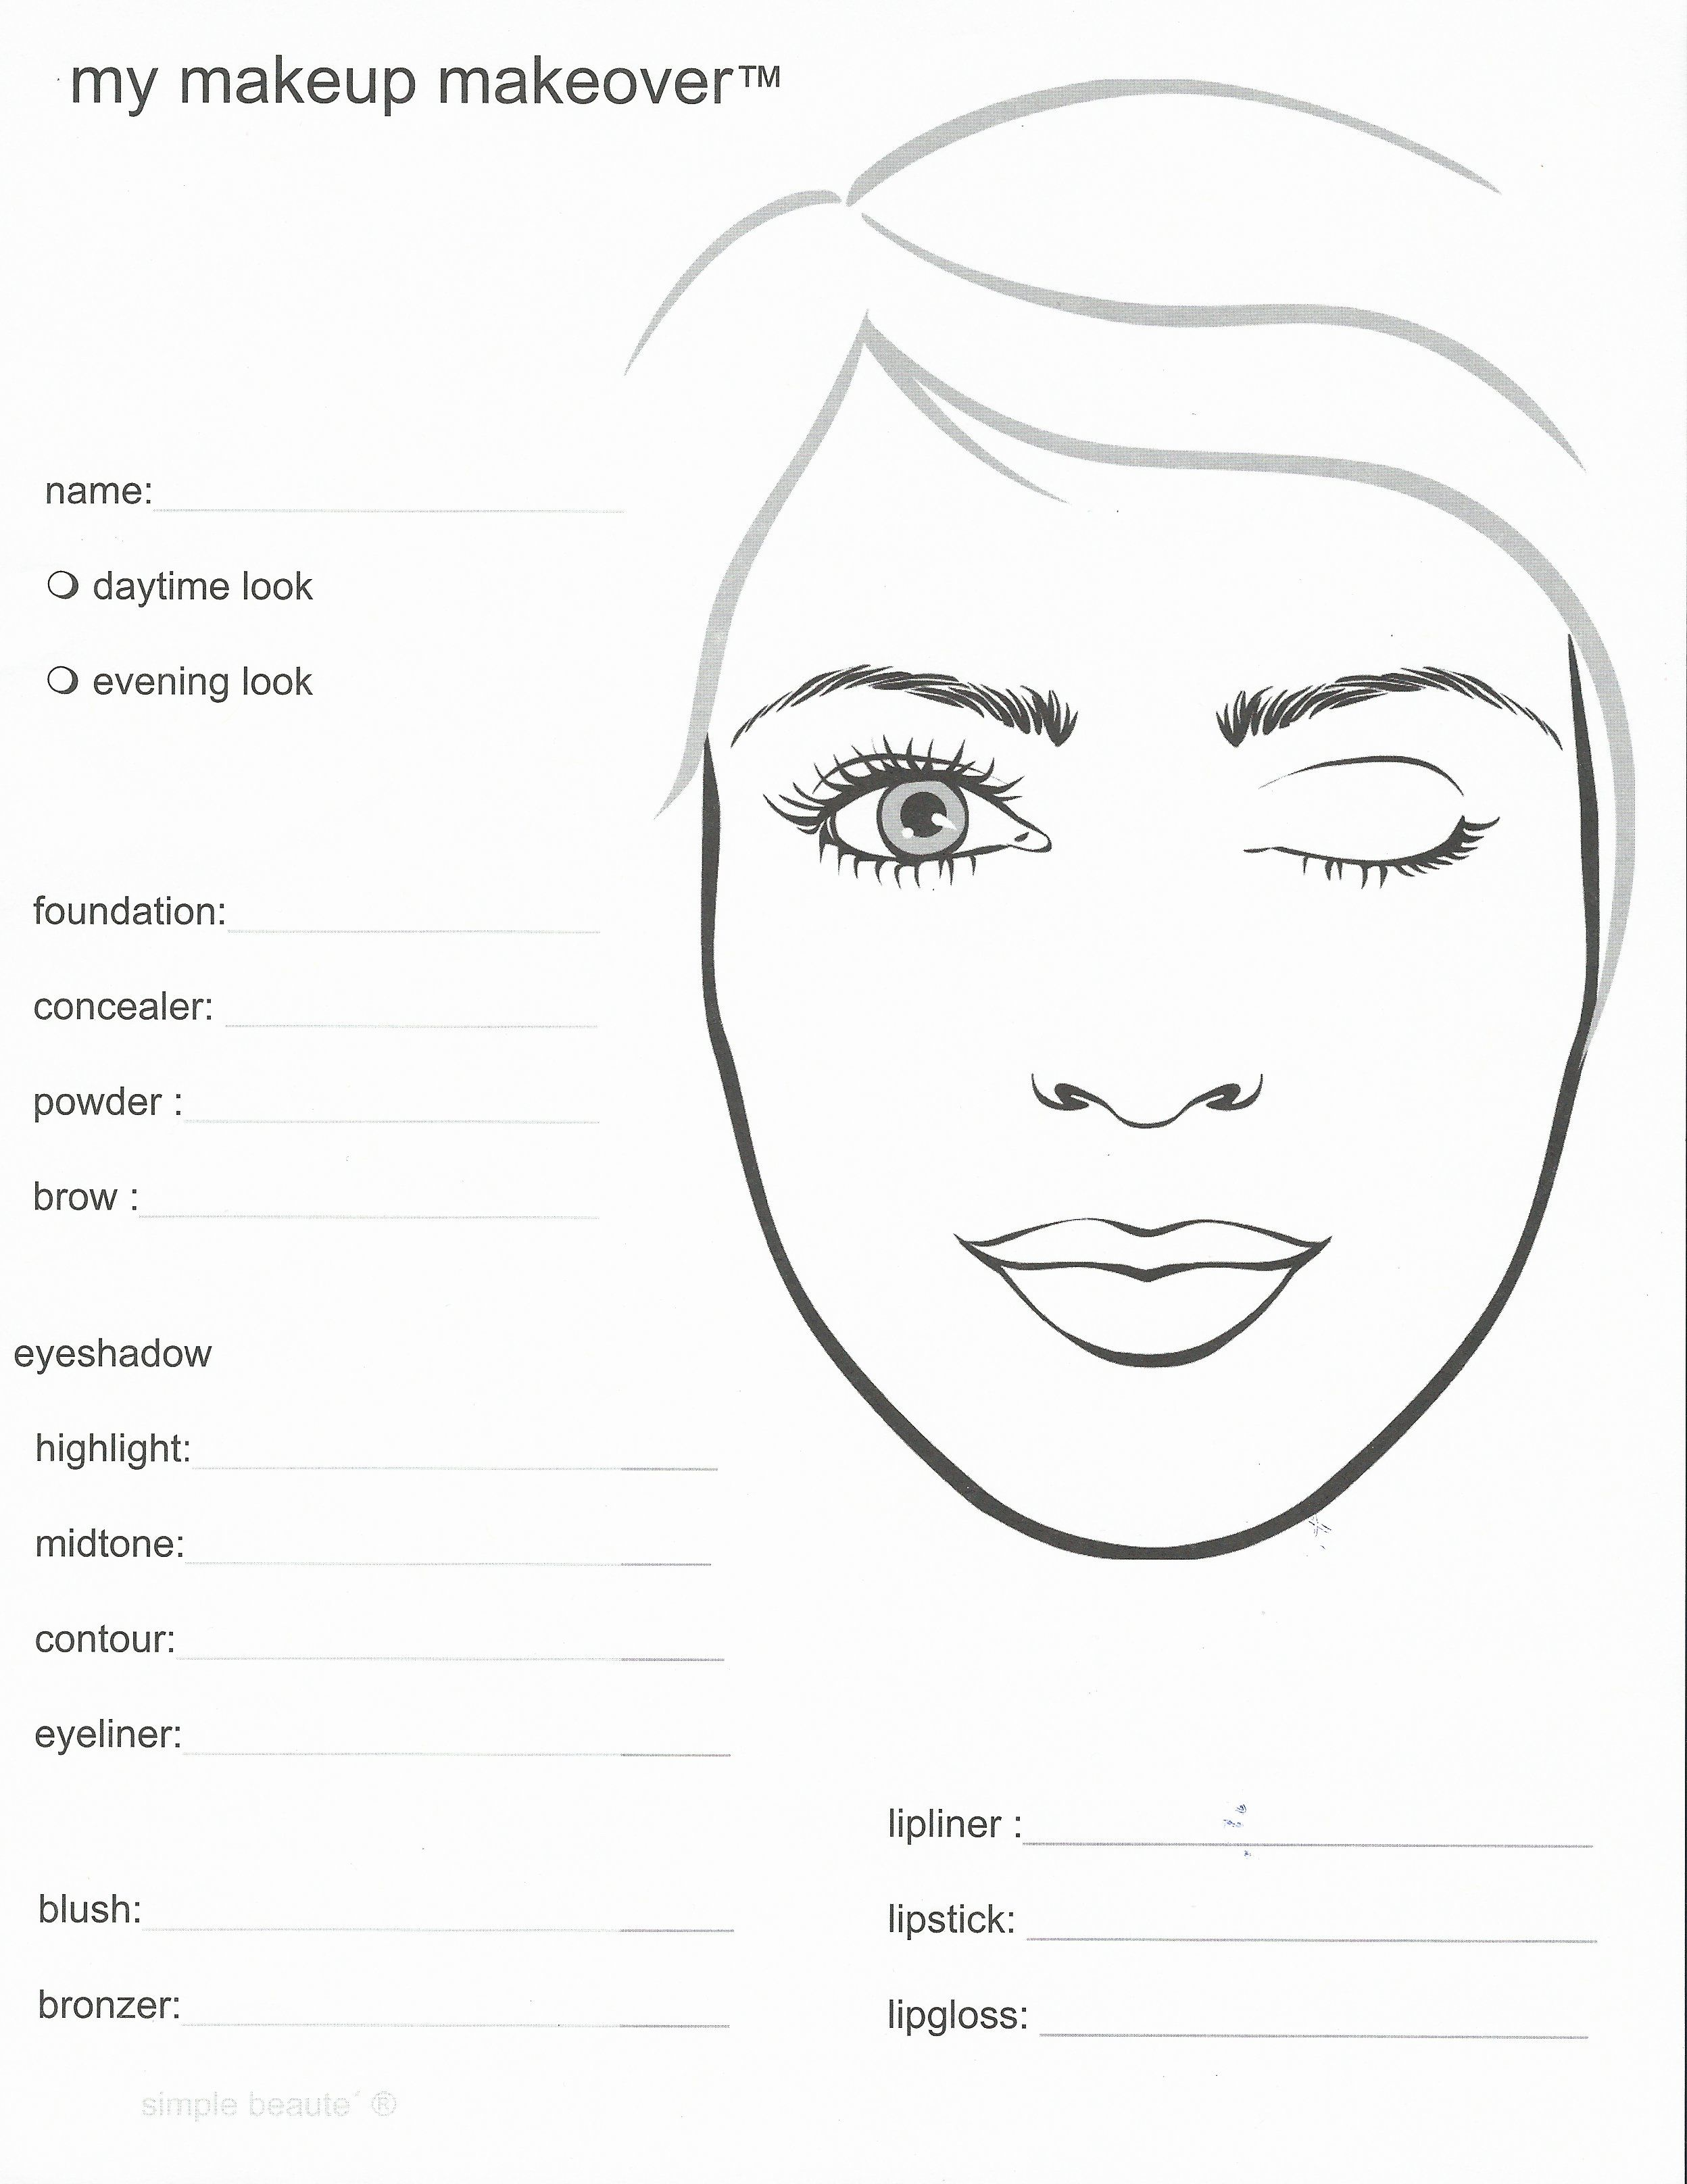 Mary Kay template. As a Mary Kay beauty consultant I can